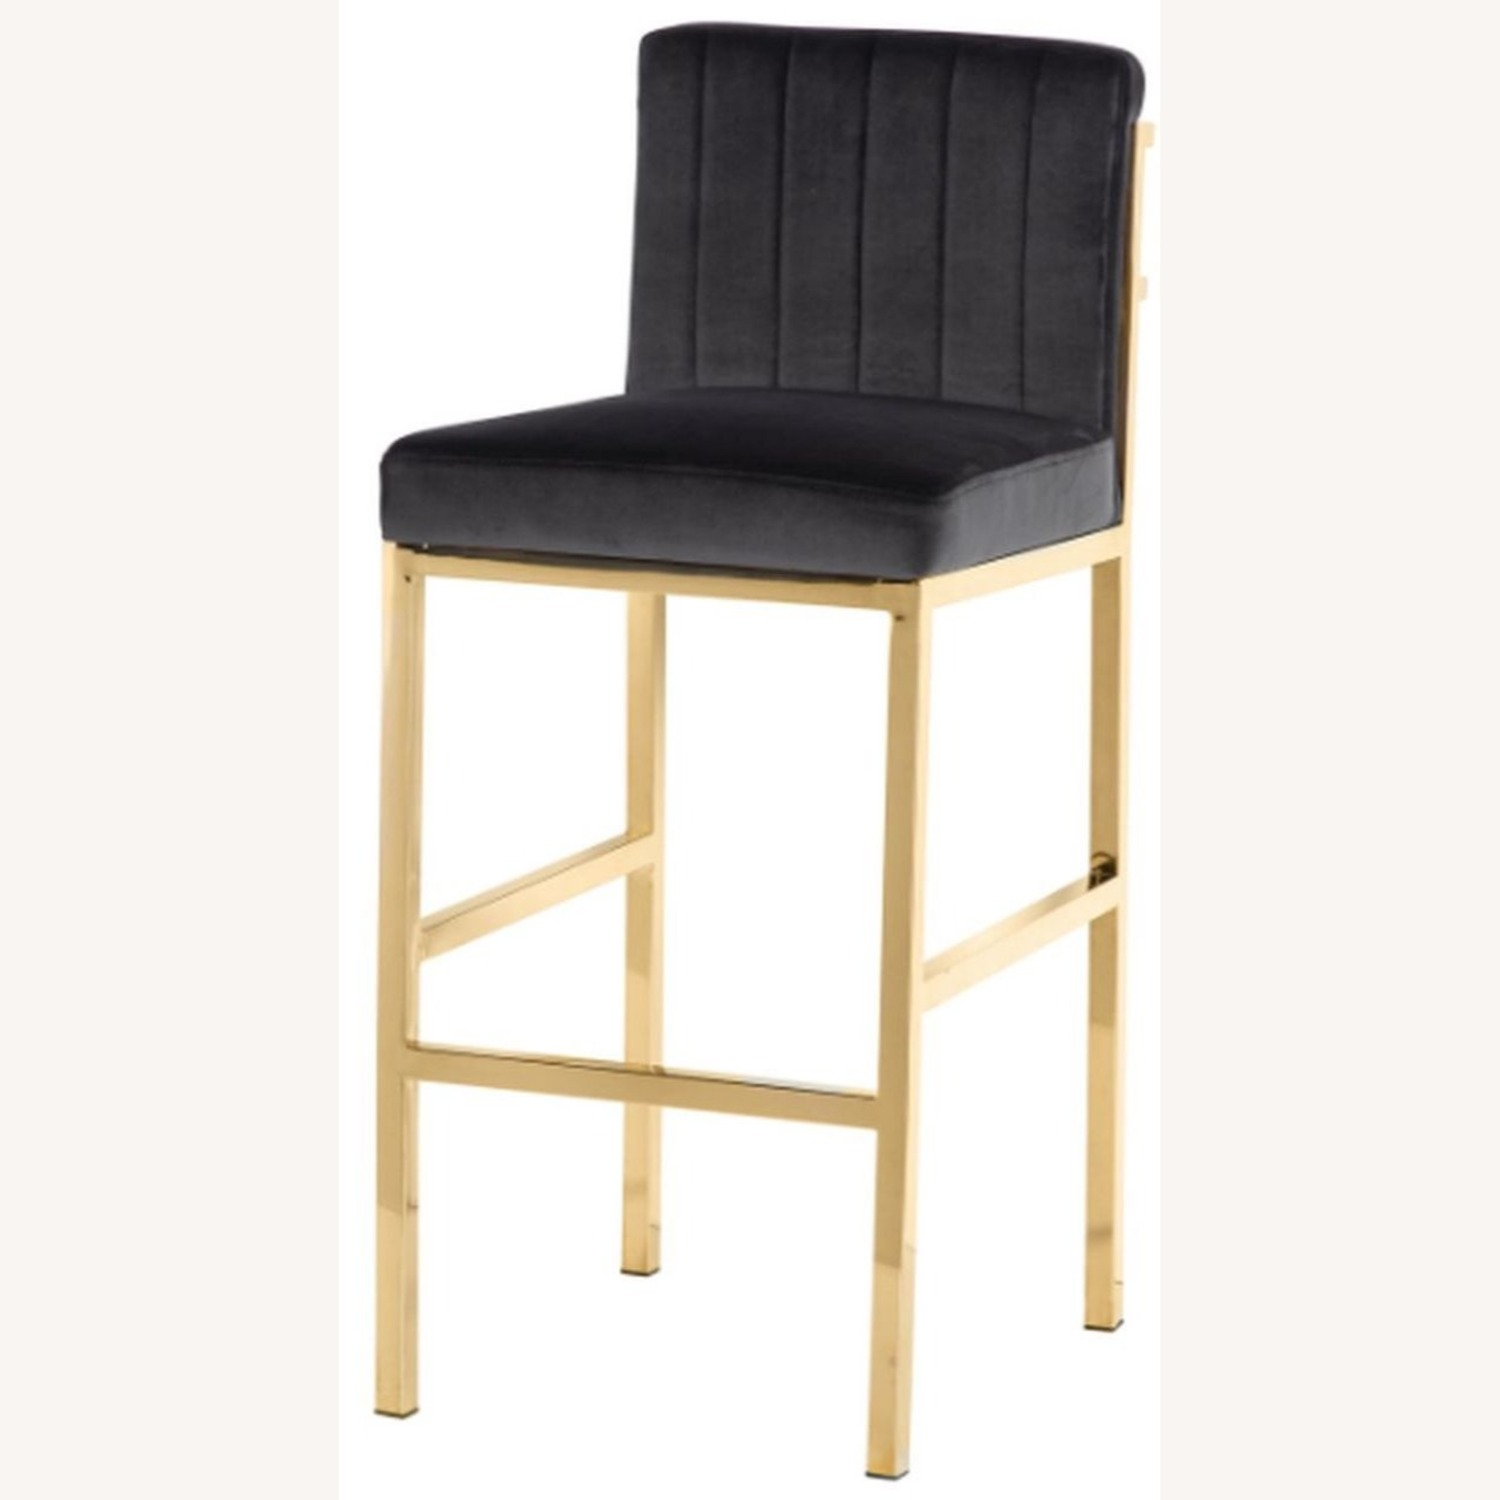 Bar Stool In Charcoal Grey W/ Rose Brass Base - image-1